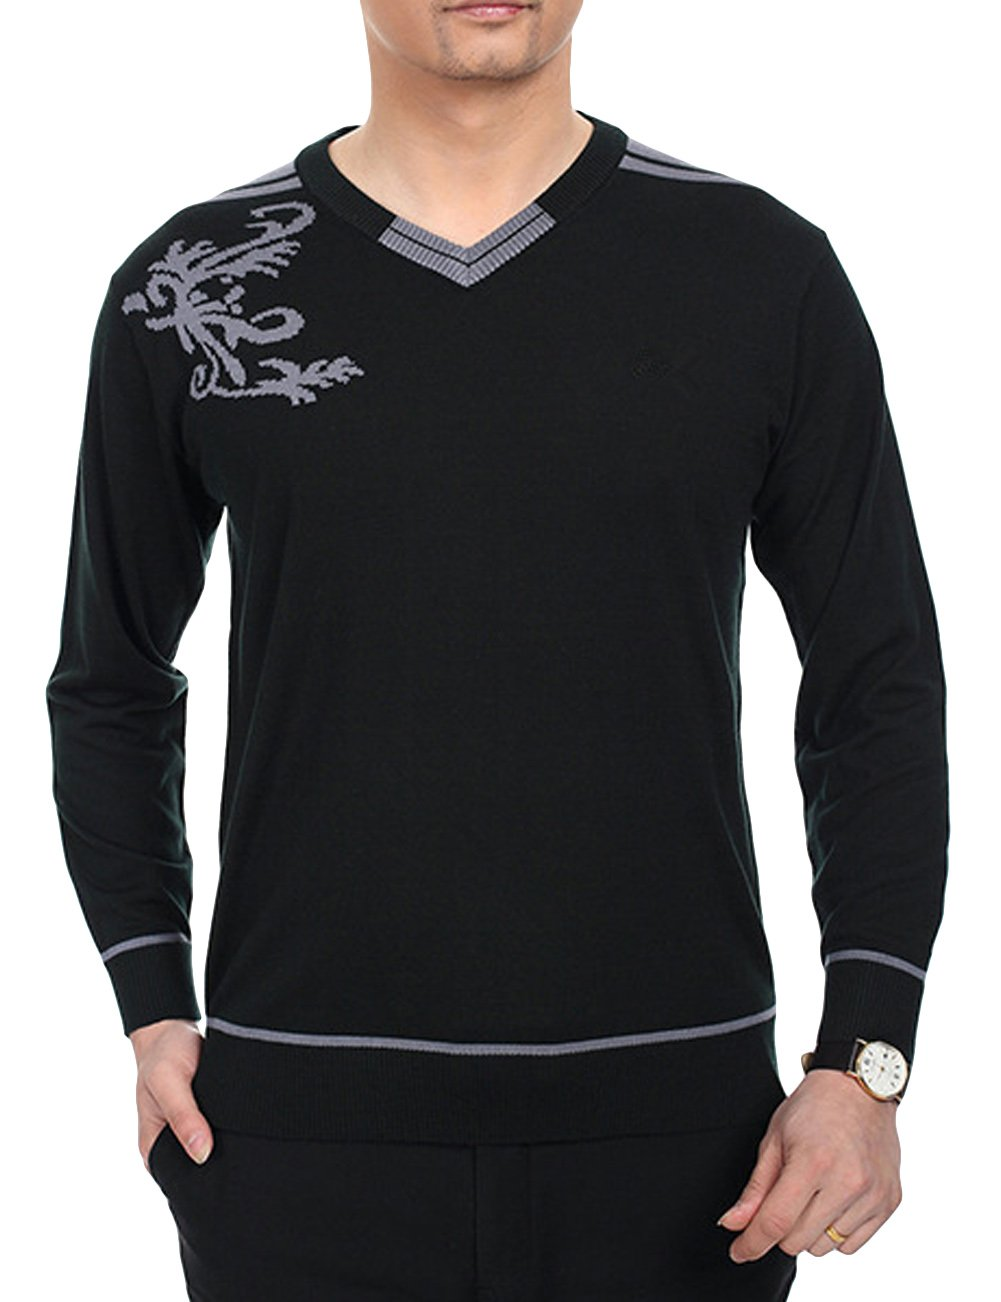 Chicside Mens Simple V Neckline Printed Cashmere Long Sleeve t Shirt Dark Green XL//US M chest:37.8